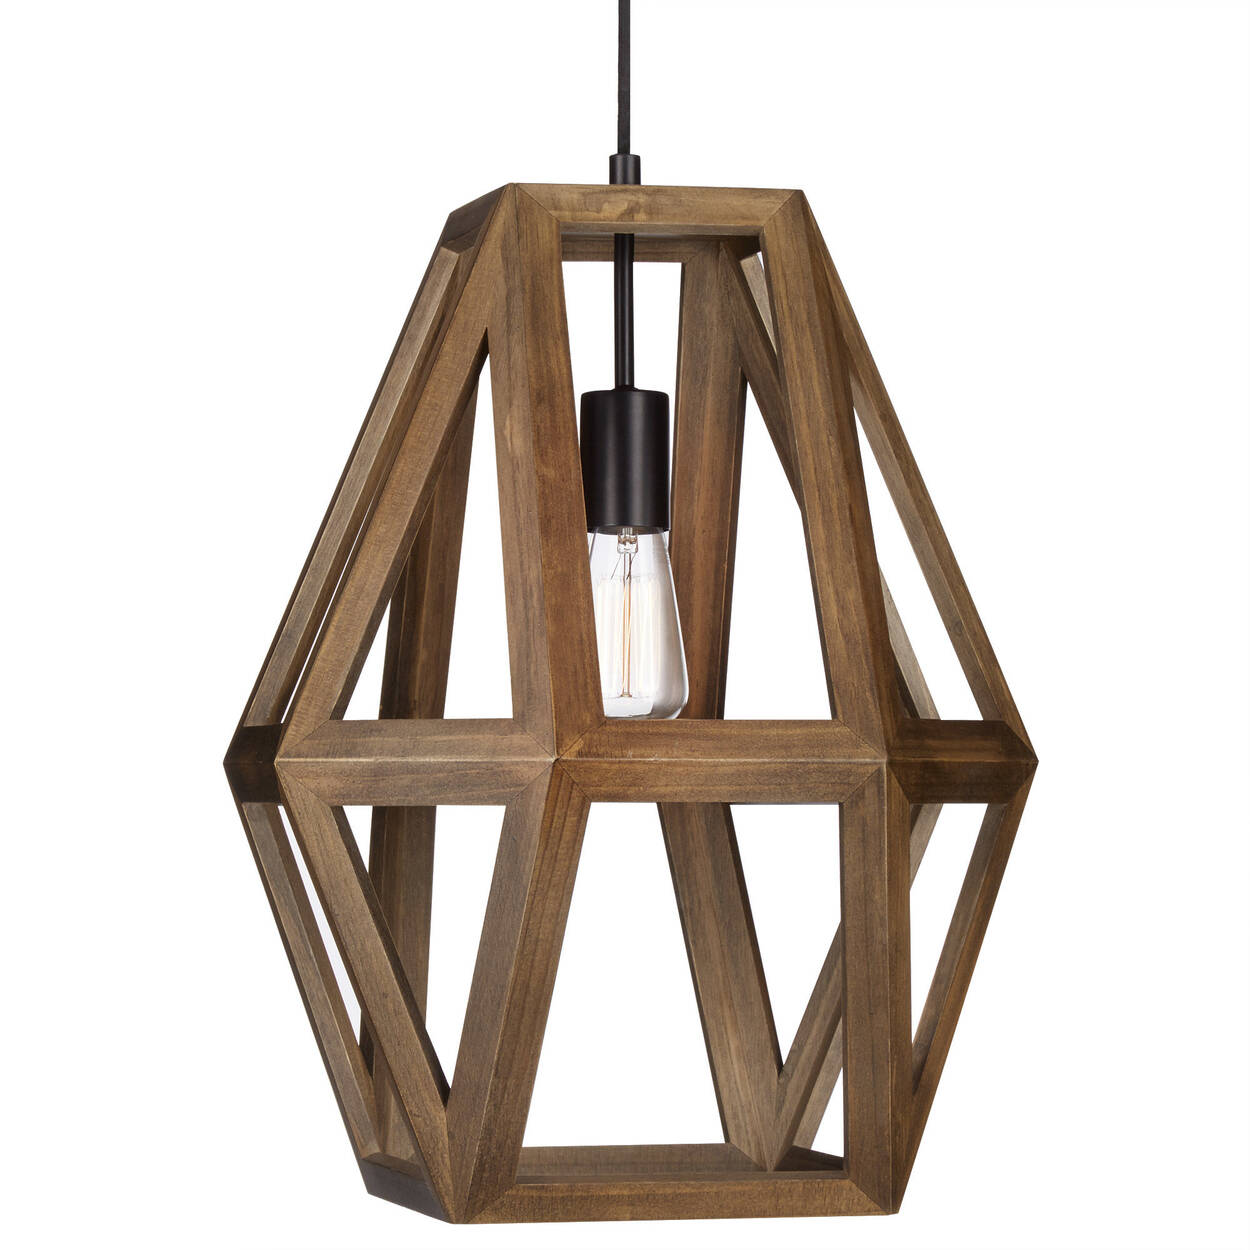 Wooden Geometrical Ceiling Lamp